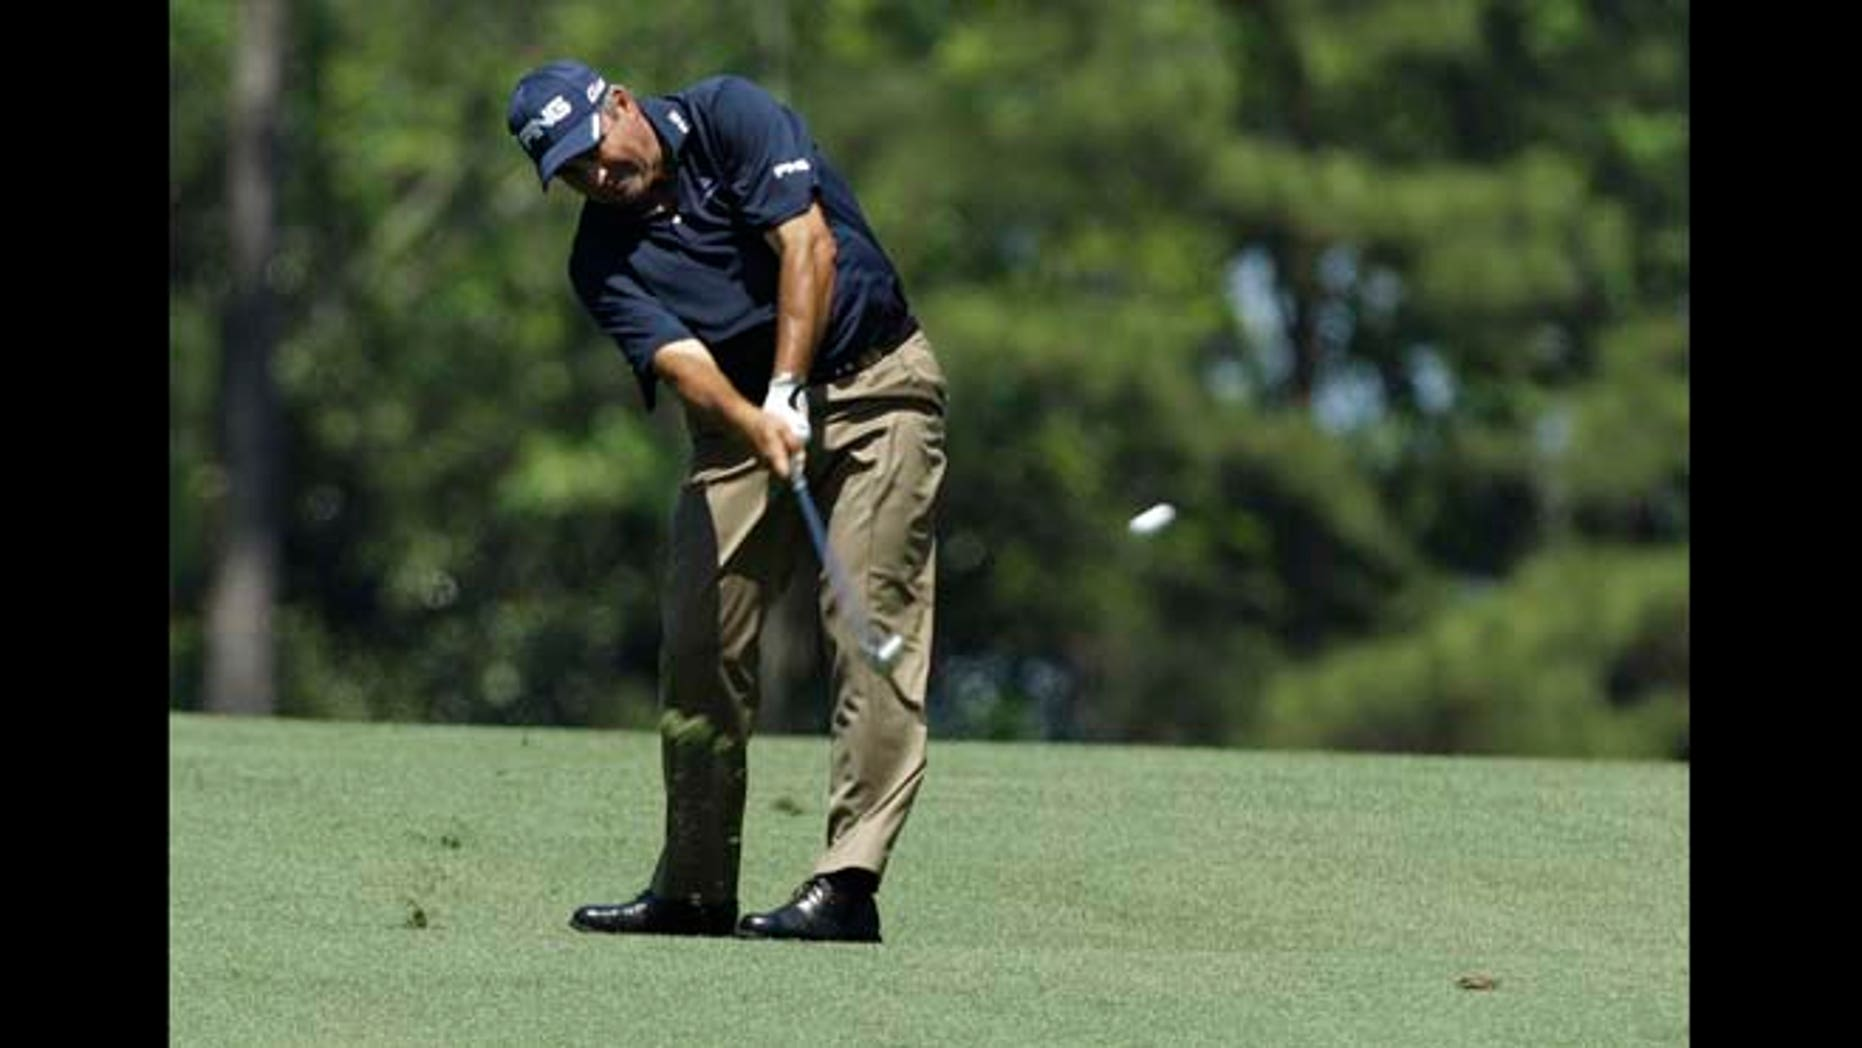 Angel Cabrera, of Argentina, hits off the second fairway during a practice round for the Masters golf tournament Monday, April 2, 2012, in Augusta, Ga.